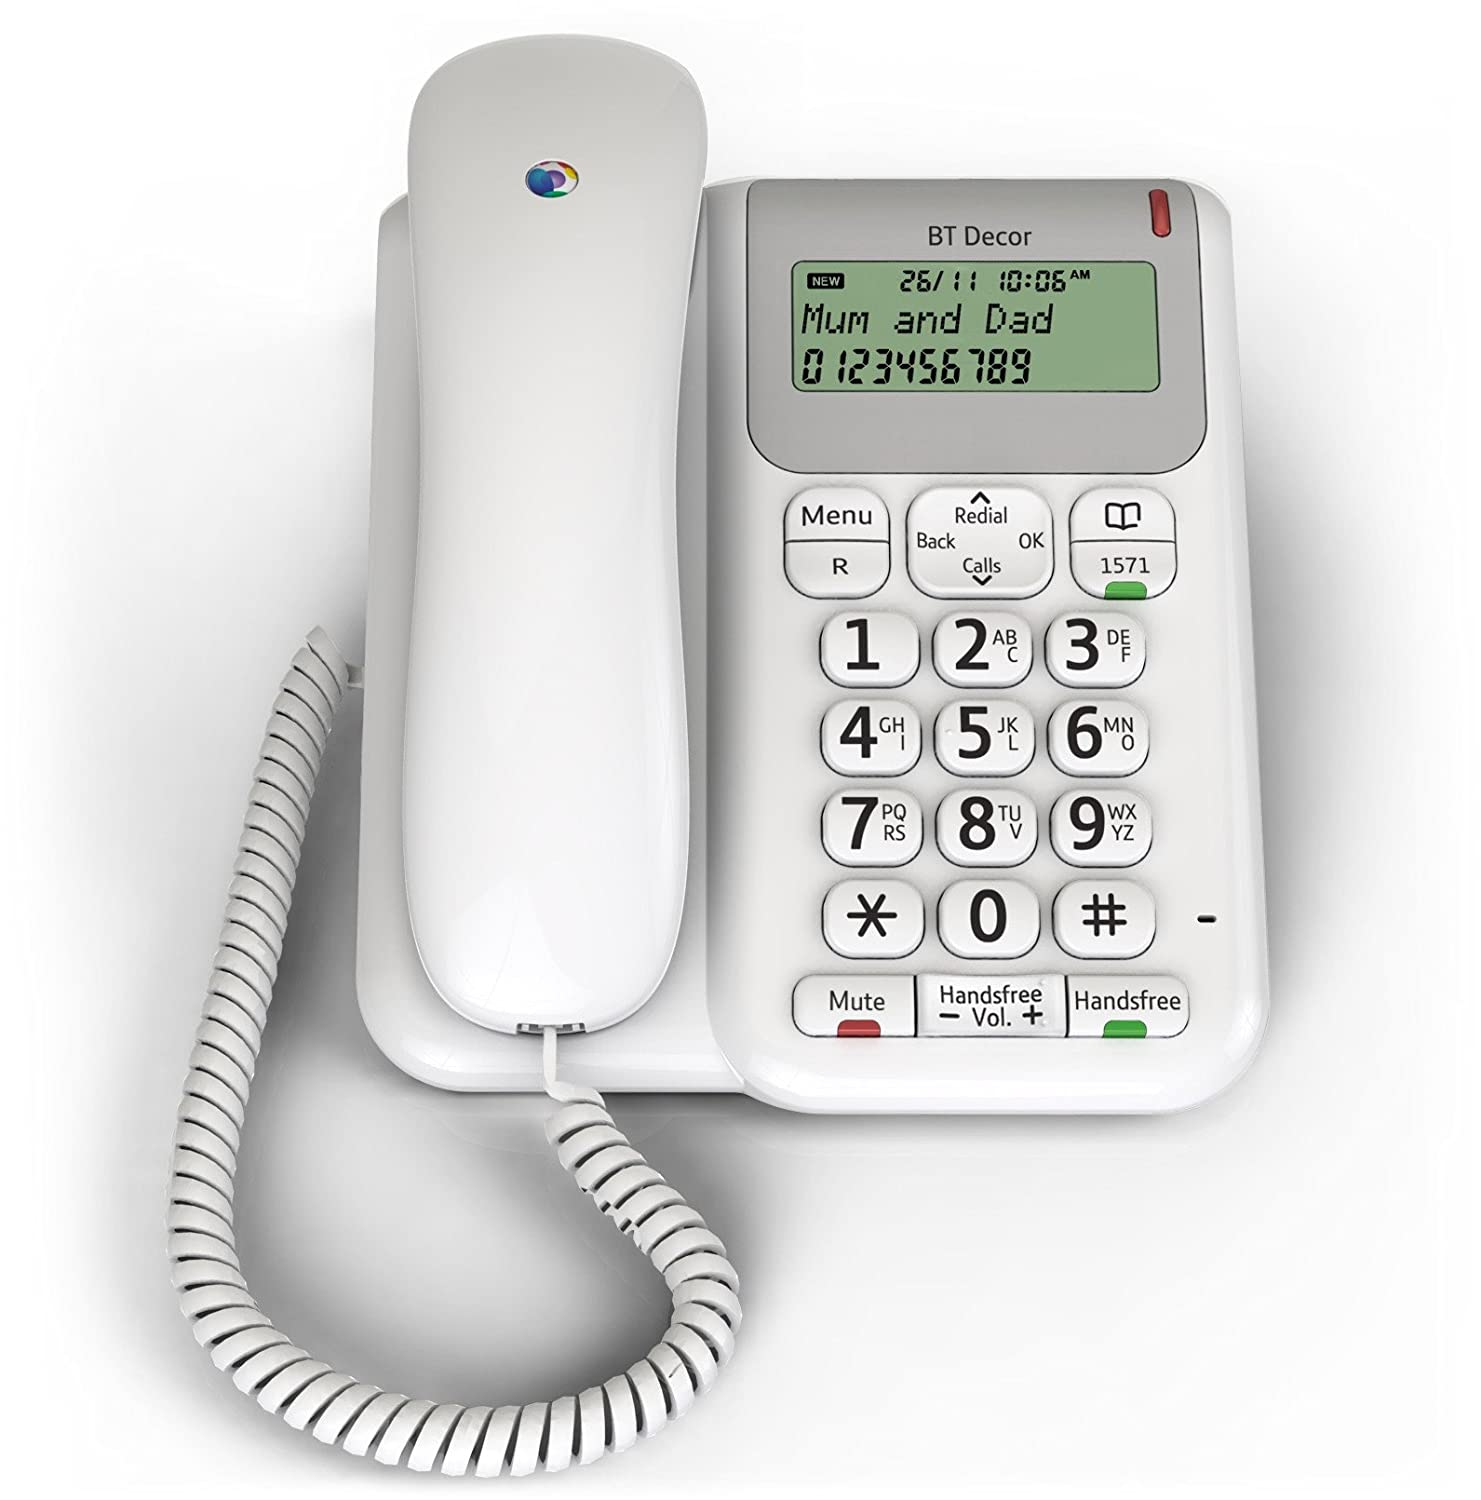 bt 2200 decor telephone corded phone landline hearing aid home phone loud white 5016351304426 ebay. Black Bedroom Furniture Sets. Home Design Ideas